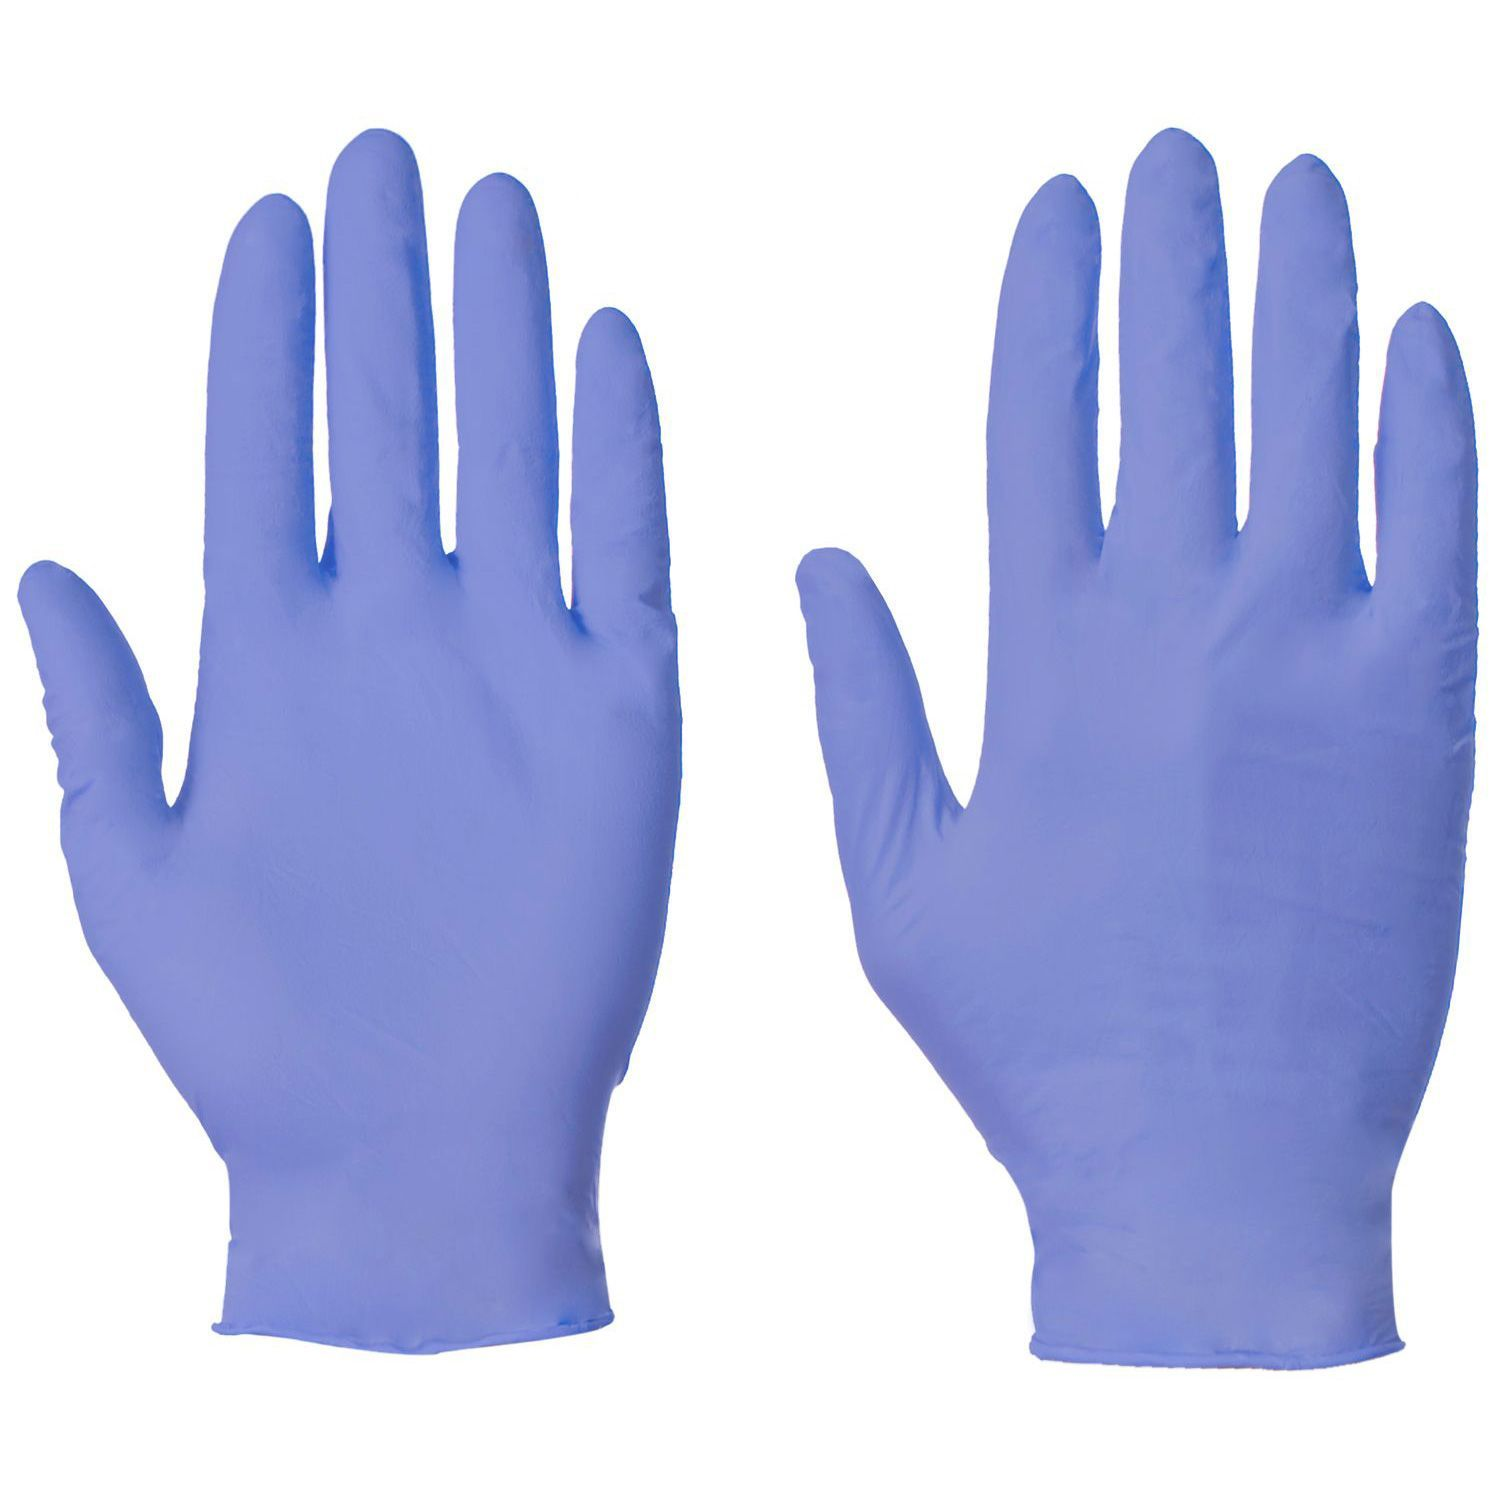 NITRILE GLOVES P/FREE (BOX OF 100)